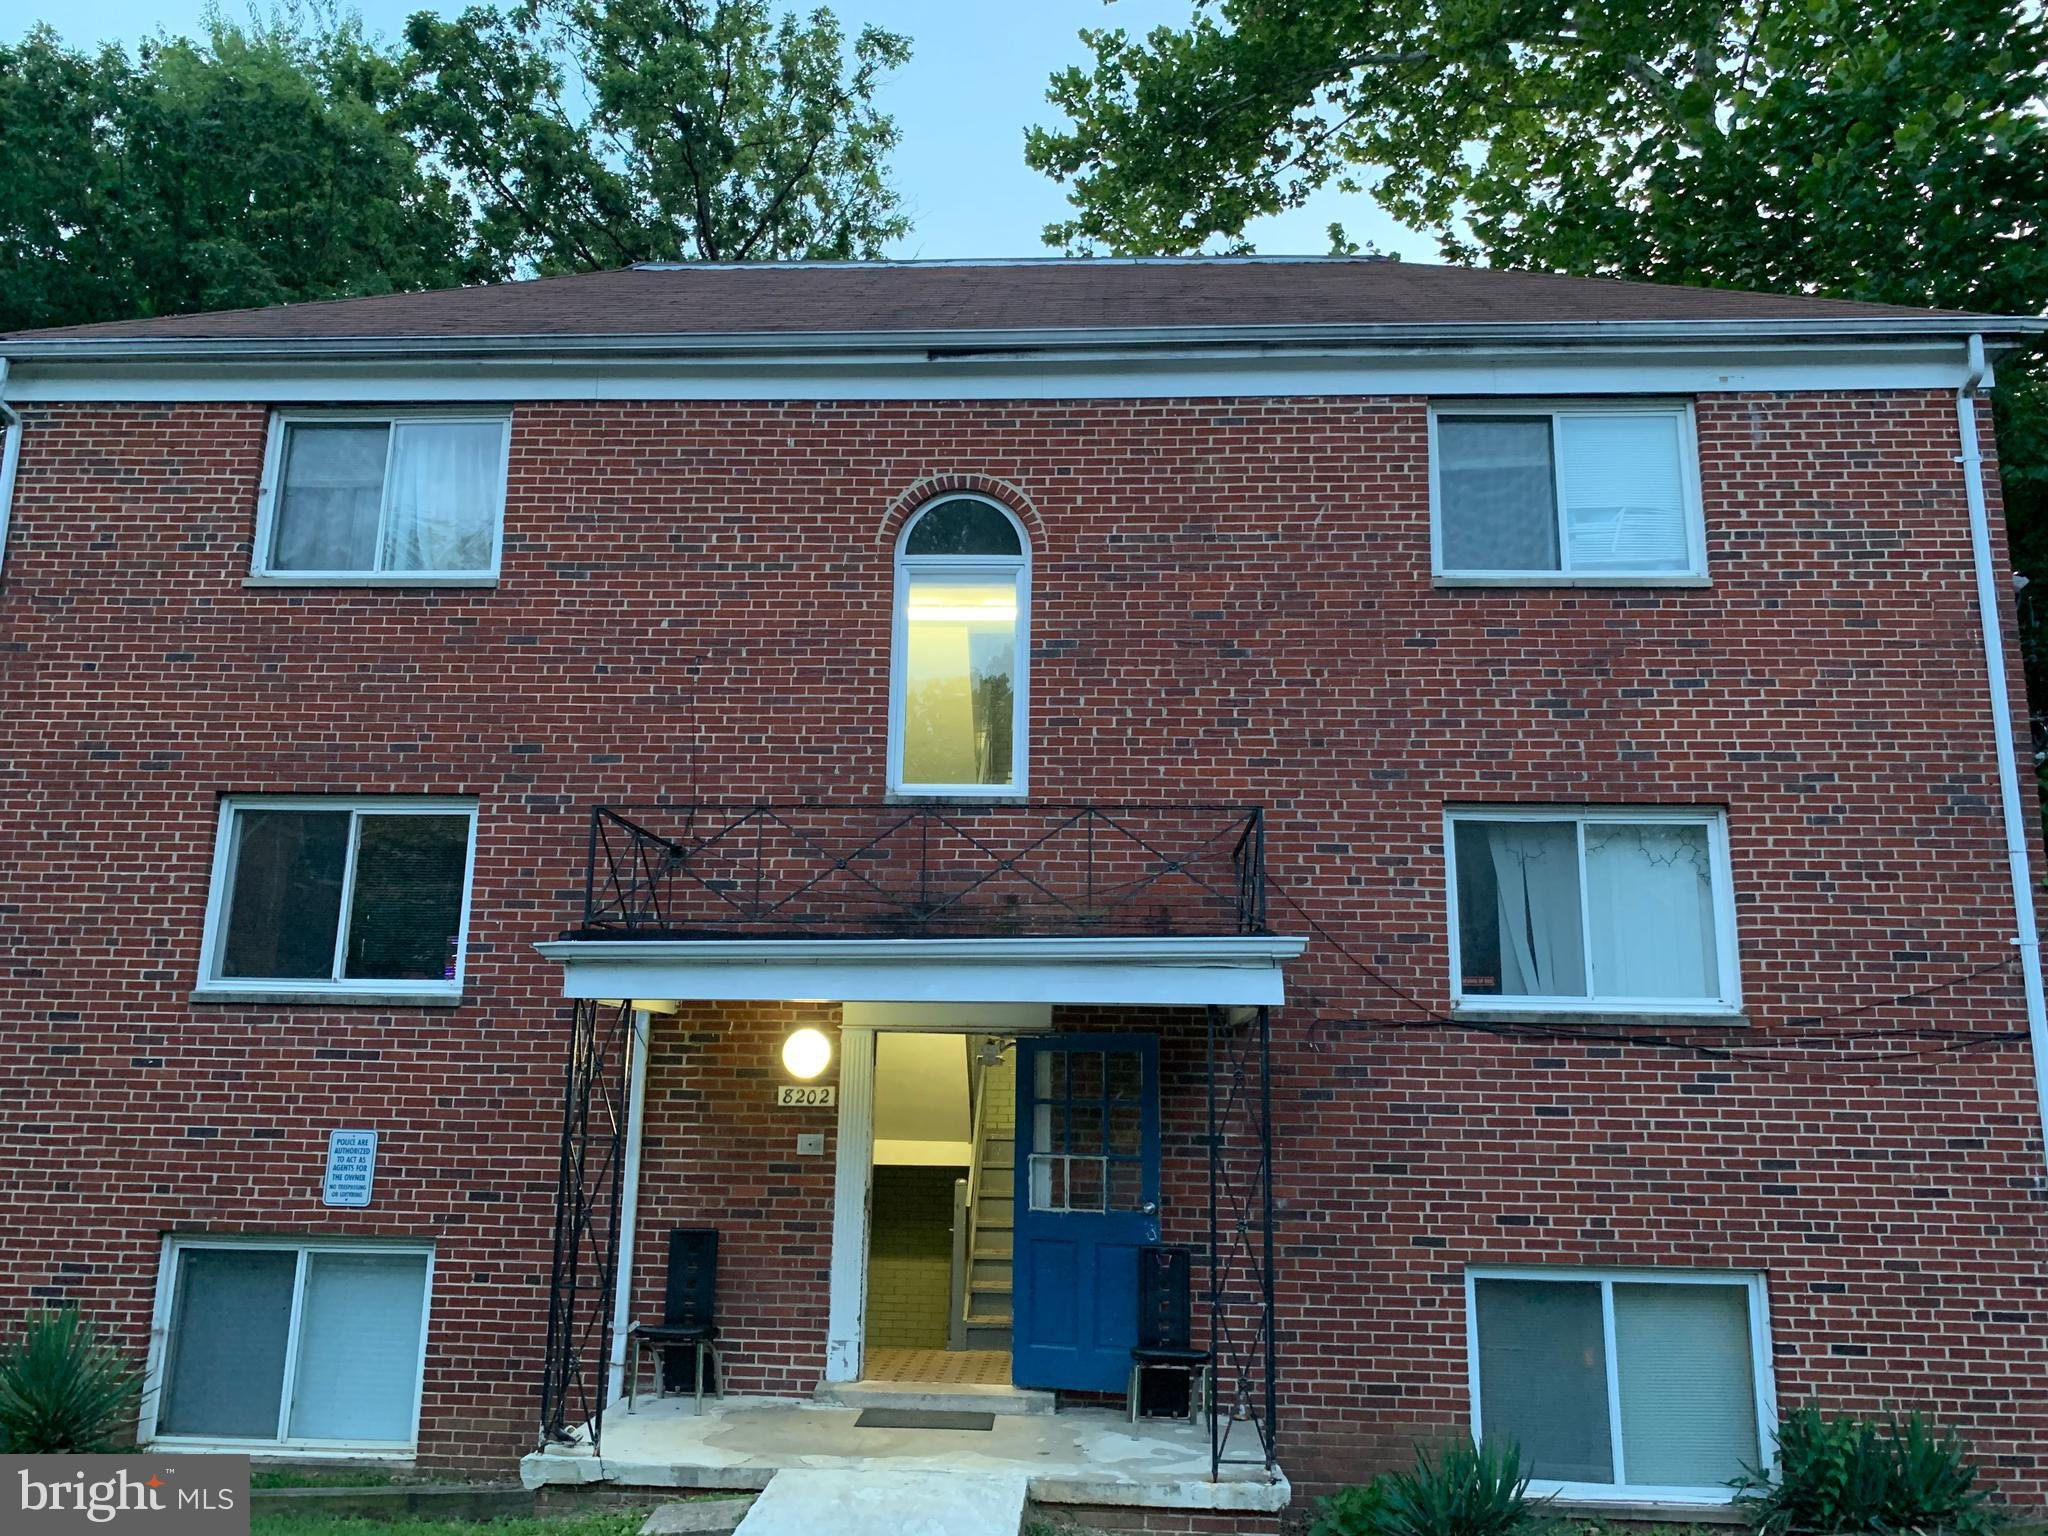 8202 HOUSTON COURT, TAKOMA PARK, MD 20912